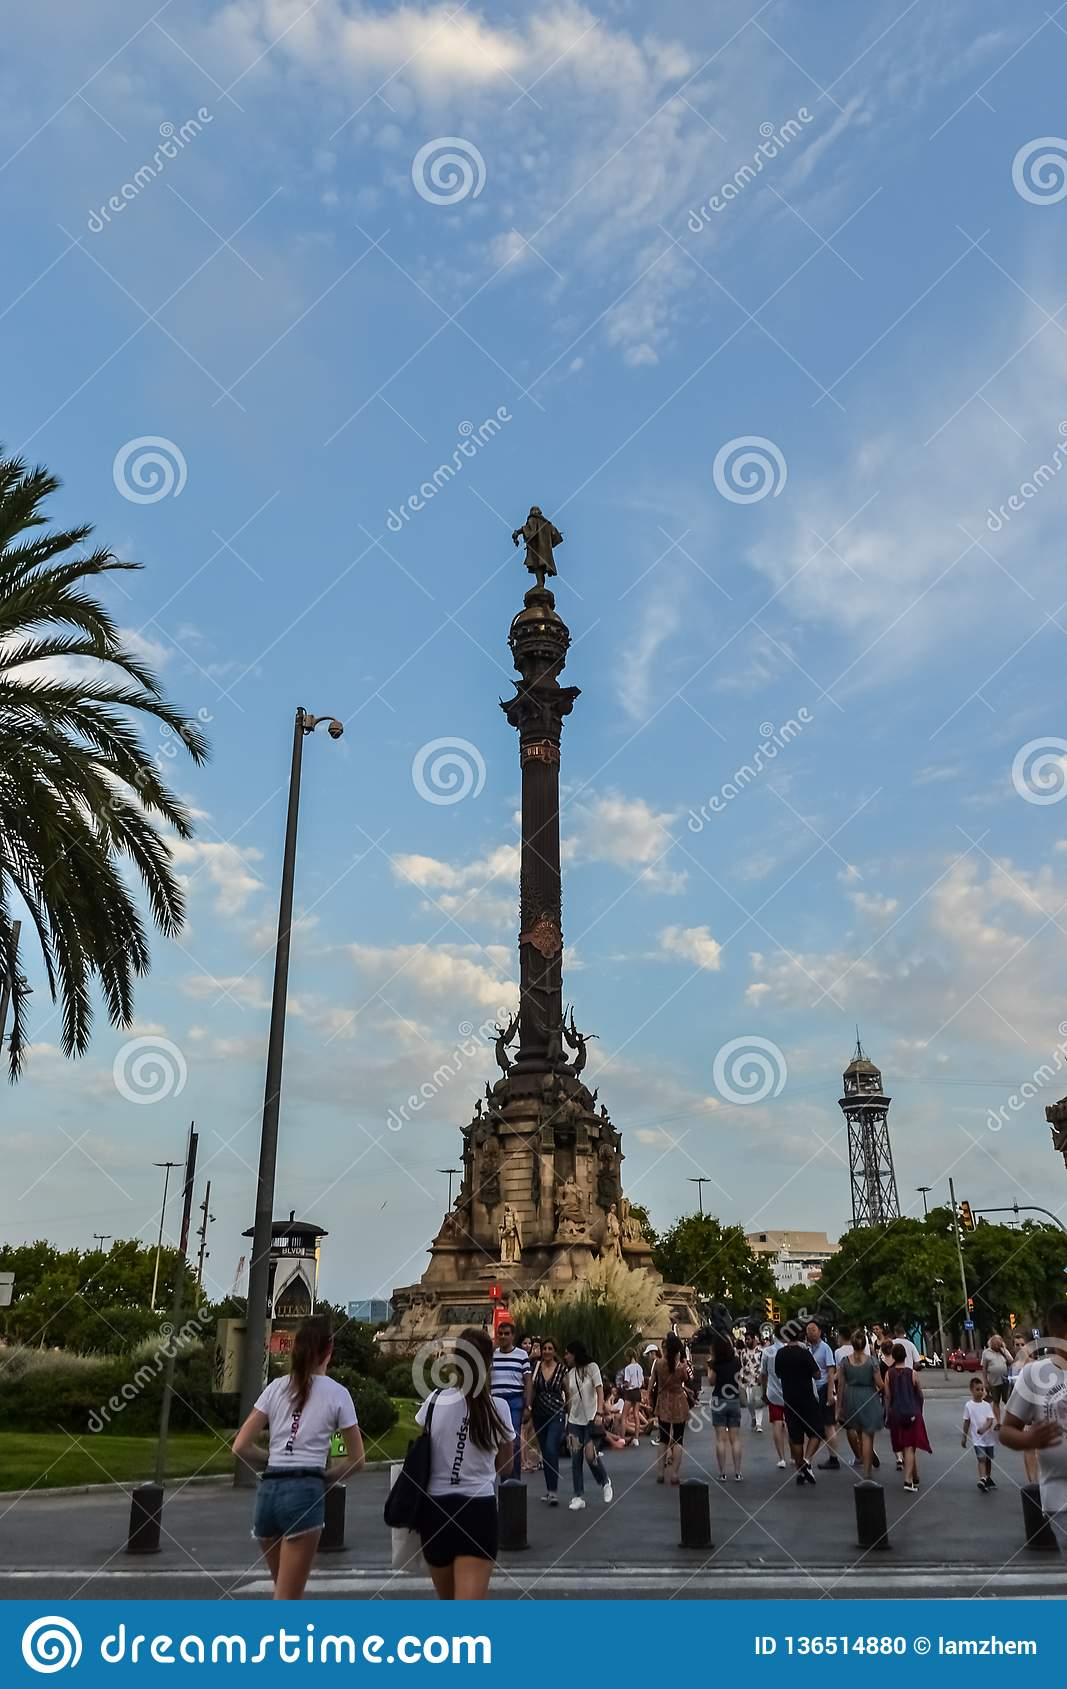 Spain Barcelona July 15, 2017. streets crowded with people, the historic district of the city for walks